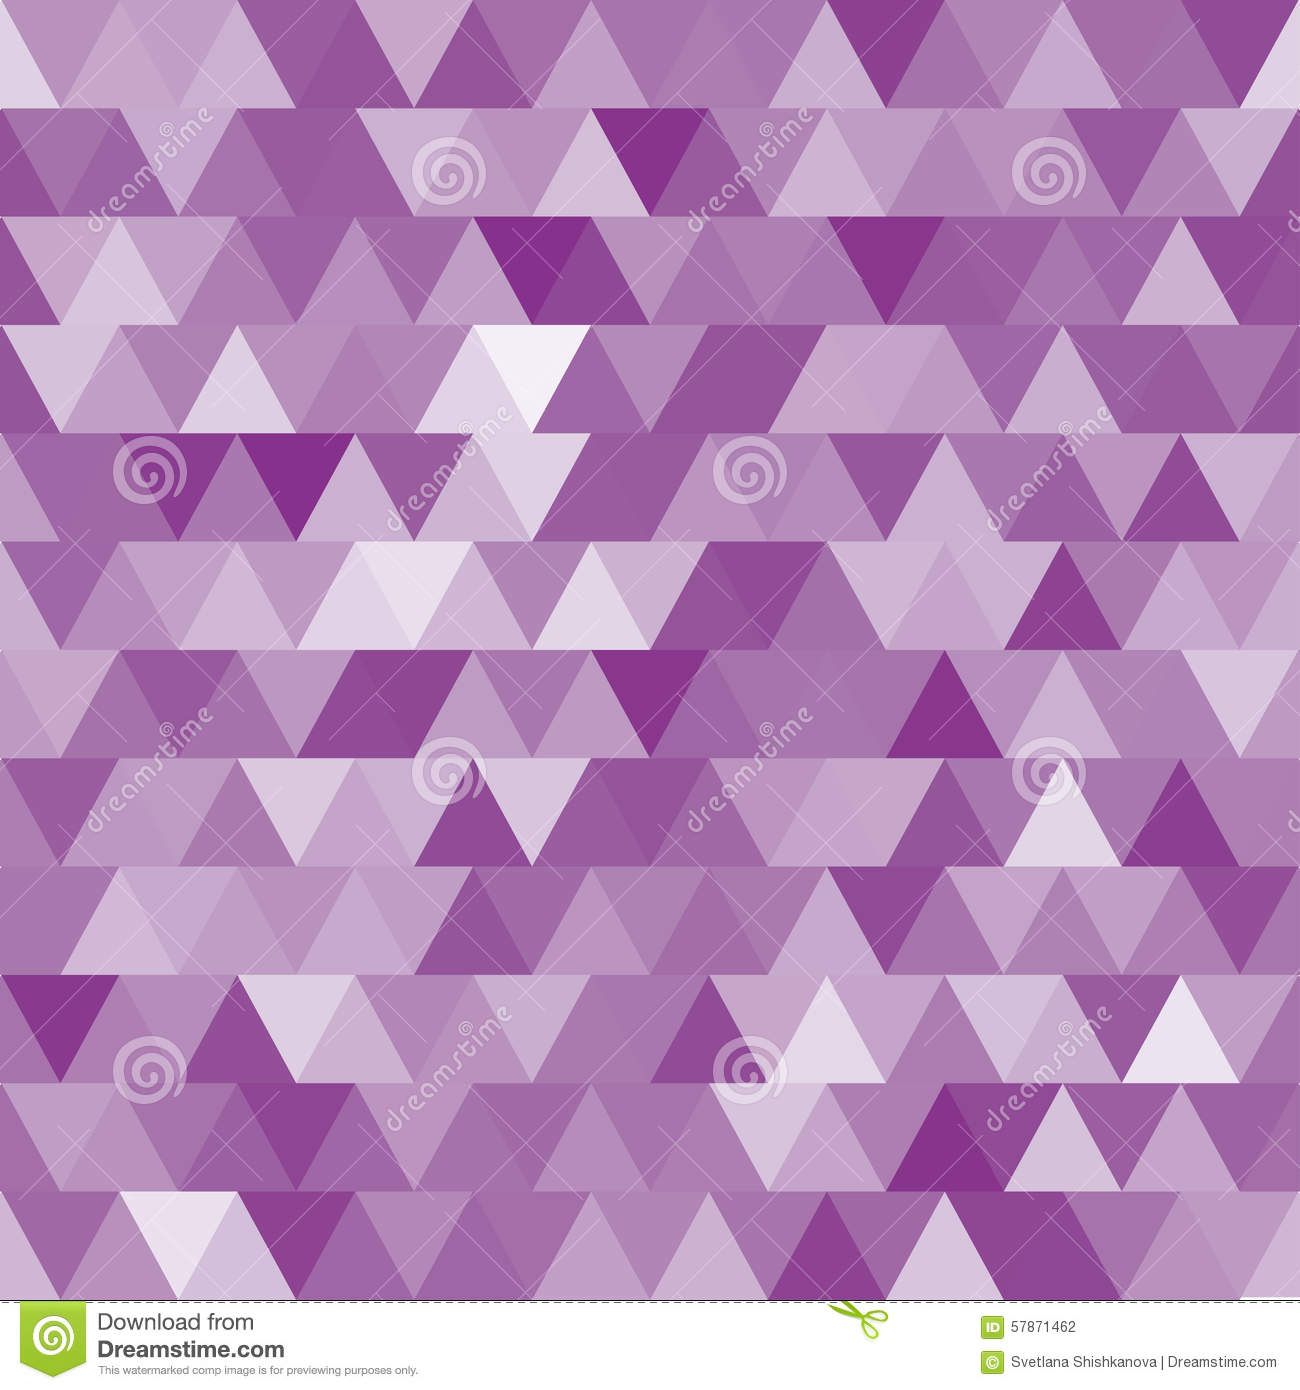 Soft Purple Vector Seamless Pattern With Triangles. Stock Vector ... 0da2d1518